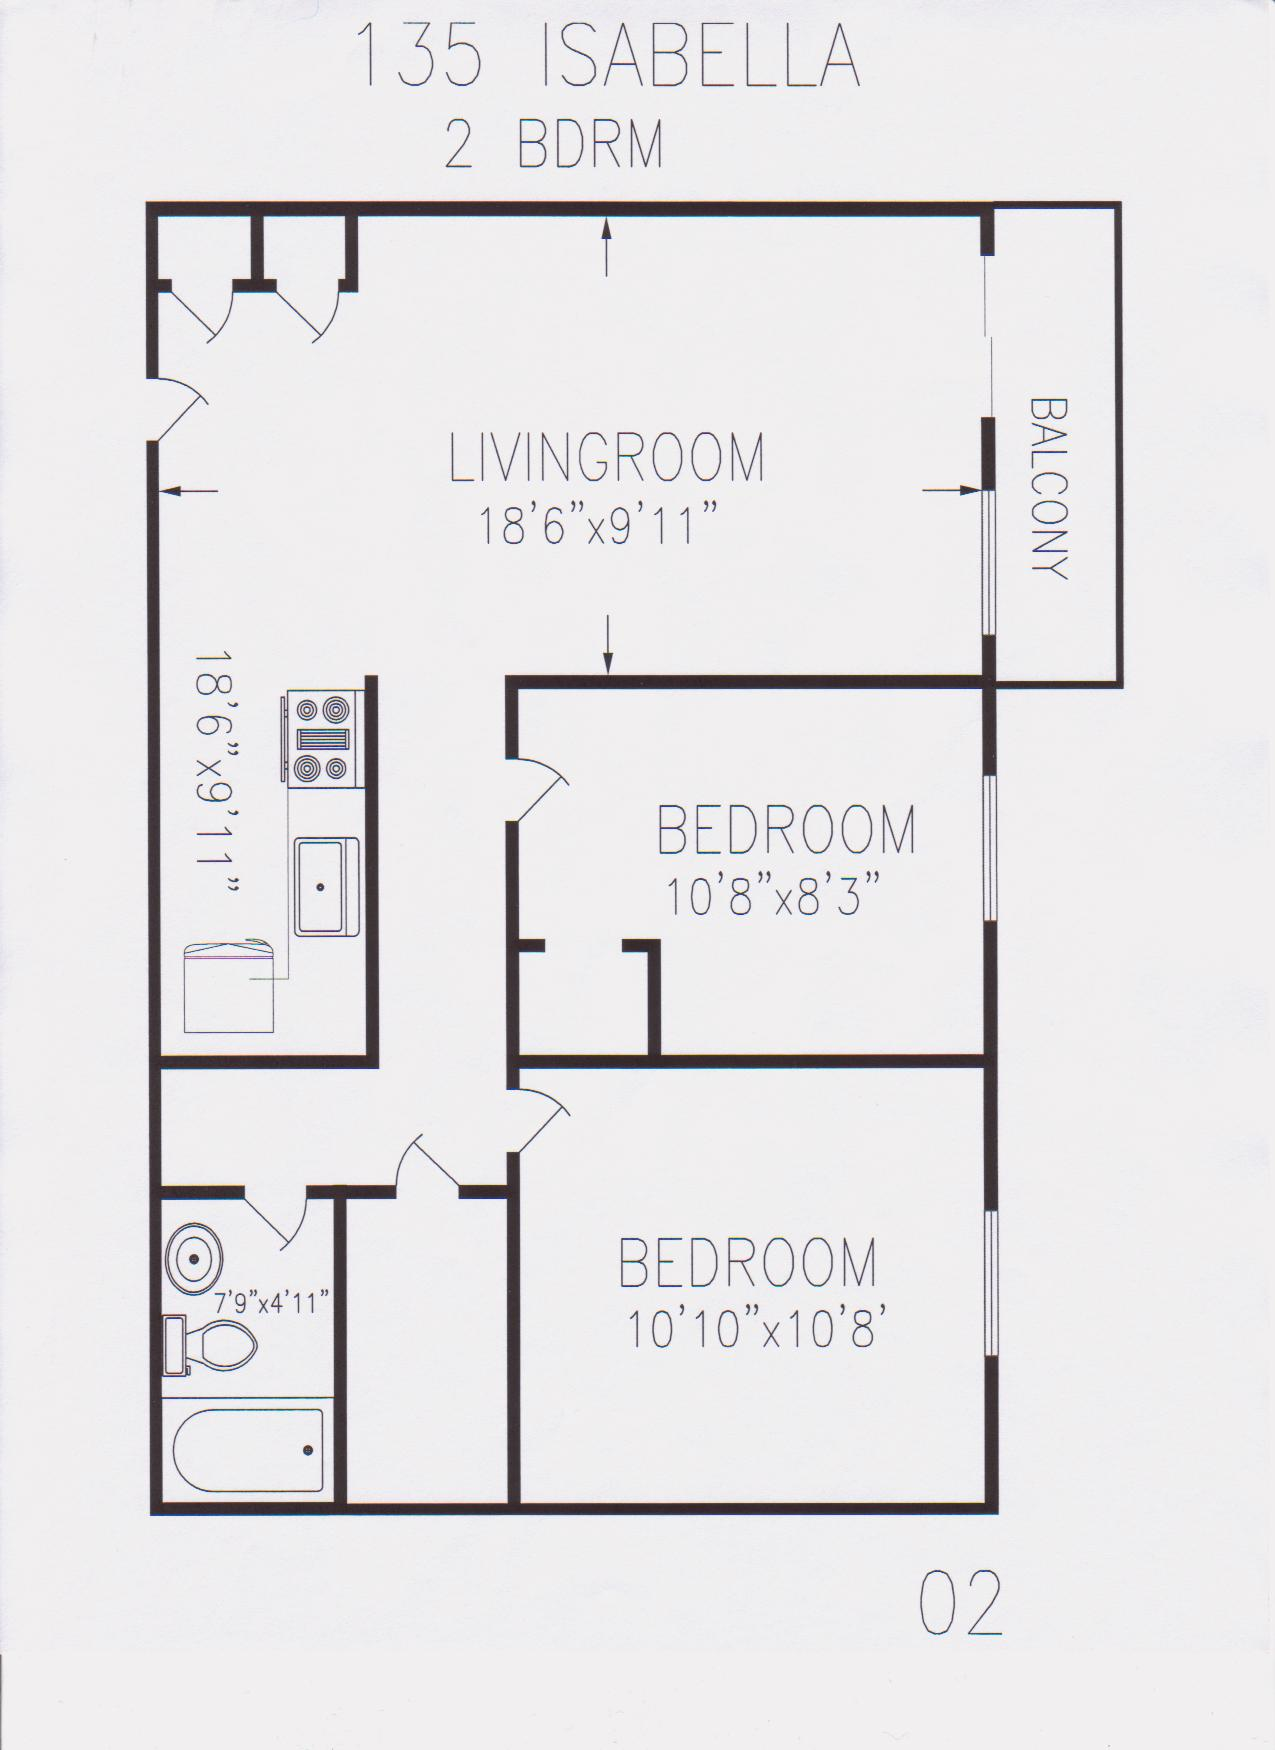 800 sq ft floor plans submited images pic2fly small house plans under 800 sq ft www imgarcade com